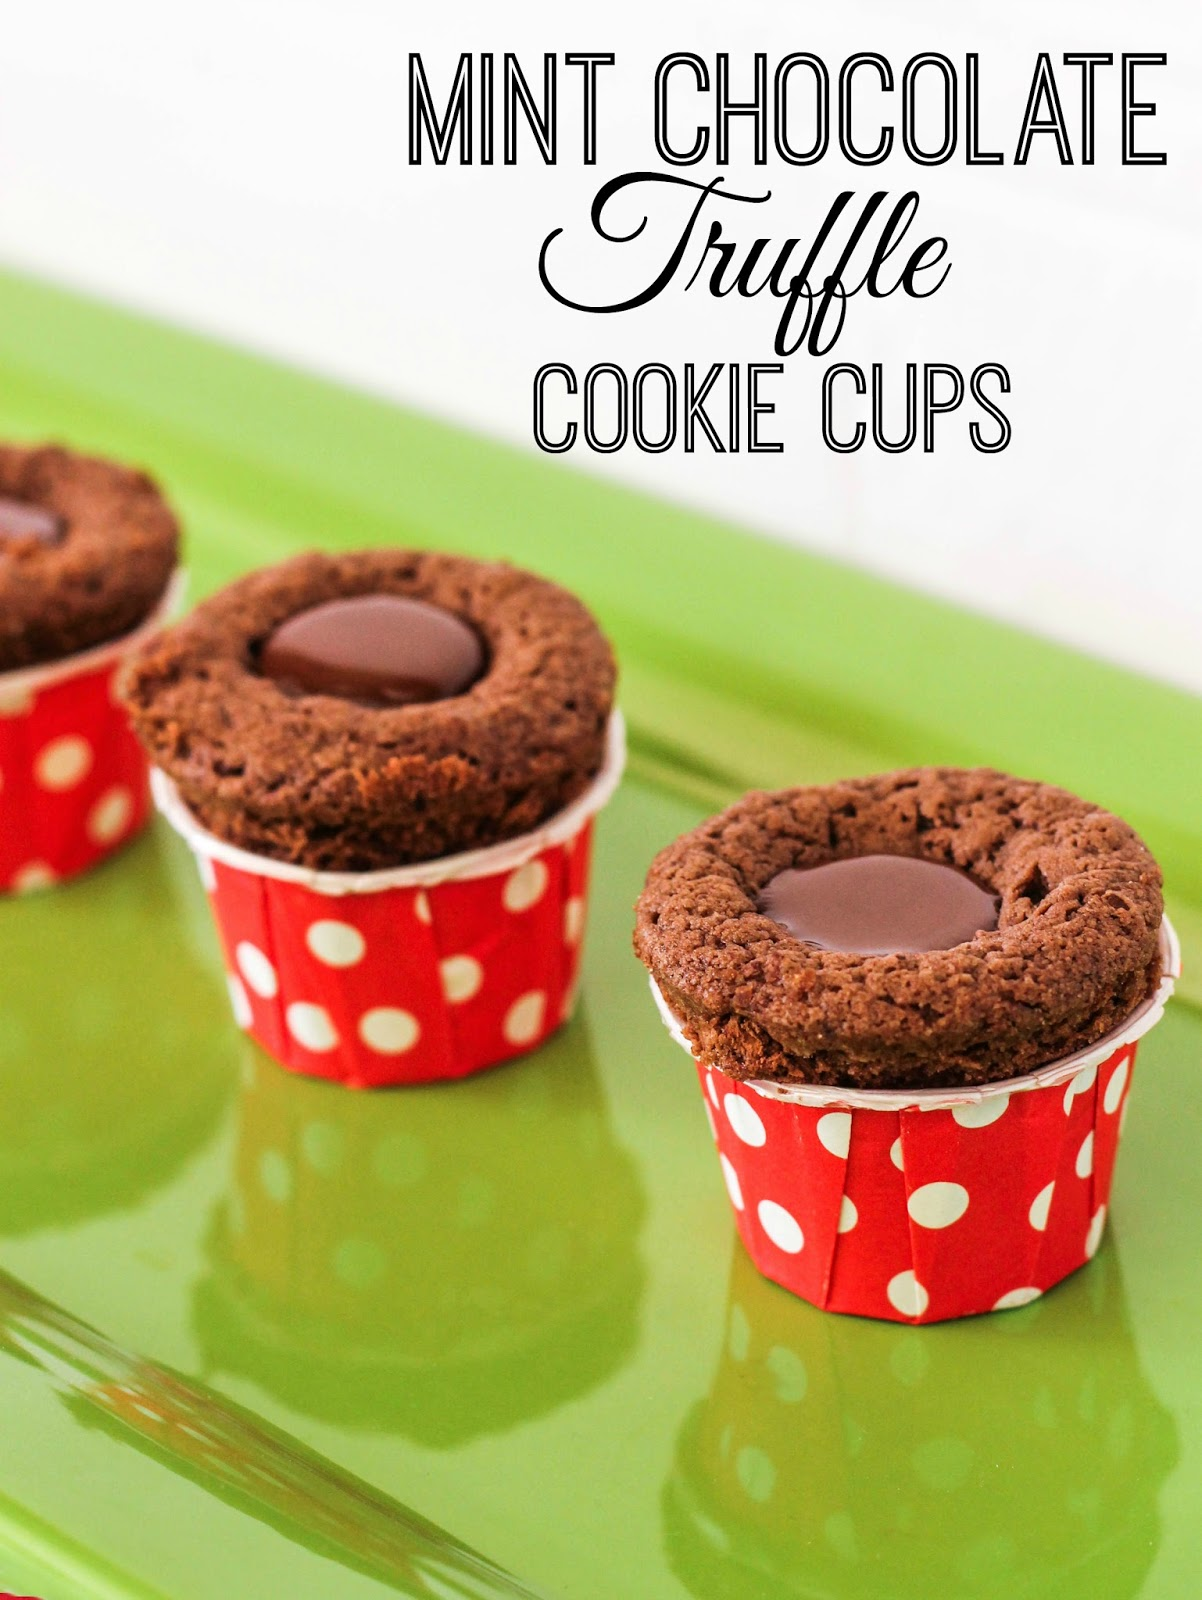 Mint Chocolate Truffle Cookie Cups